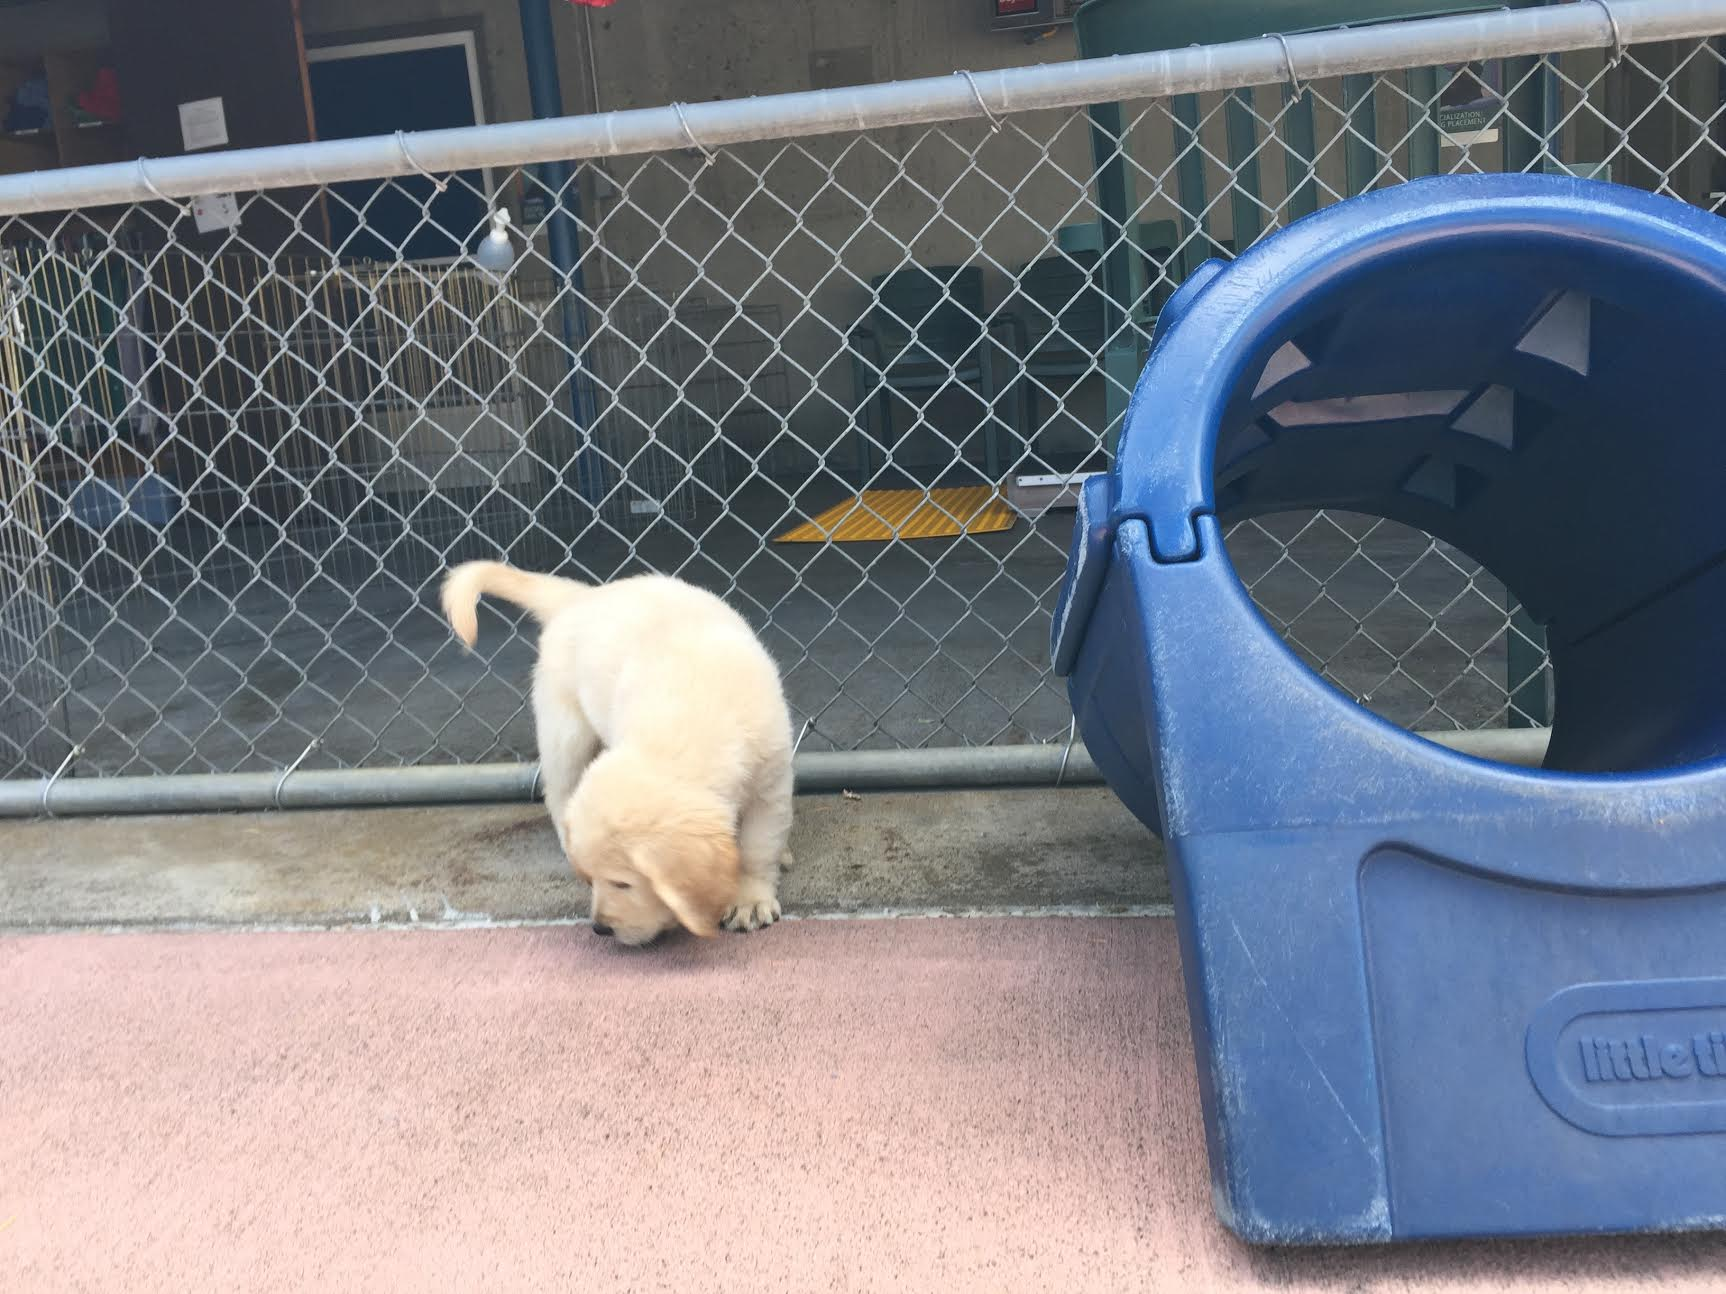 A Day in My Life: Puppy Playground at Guide Dogs for the